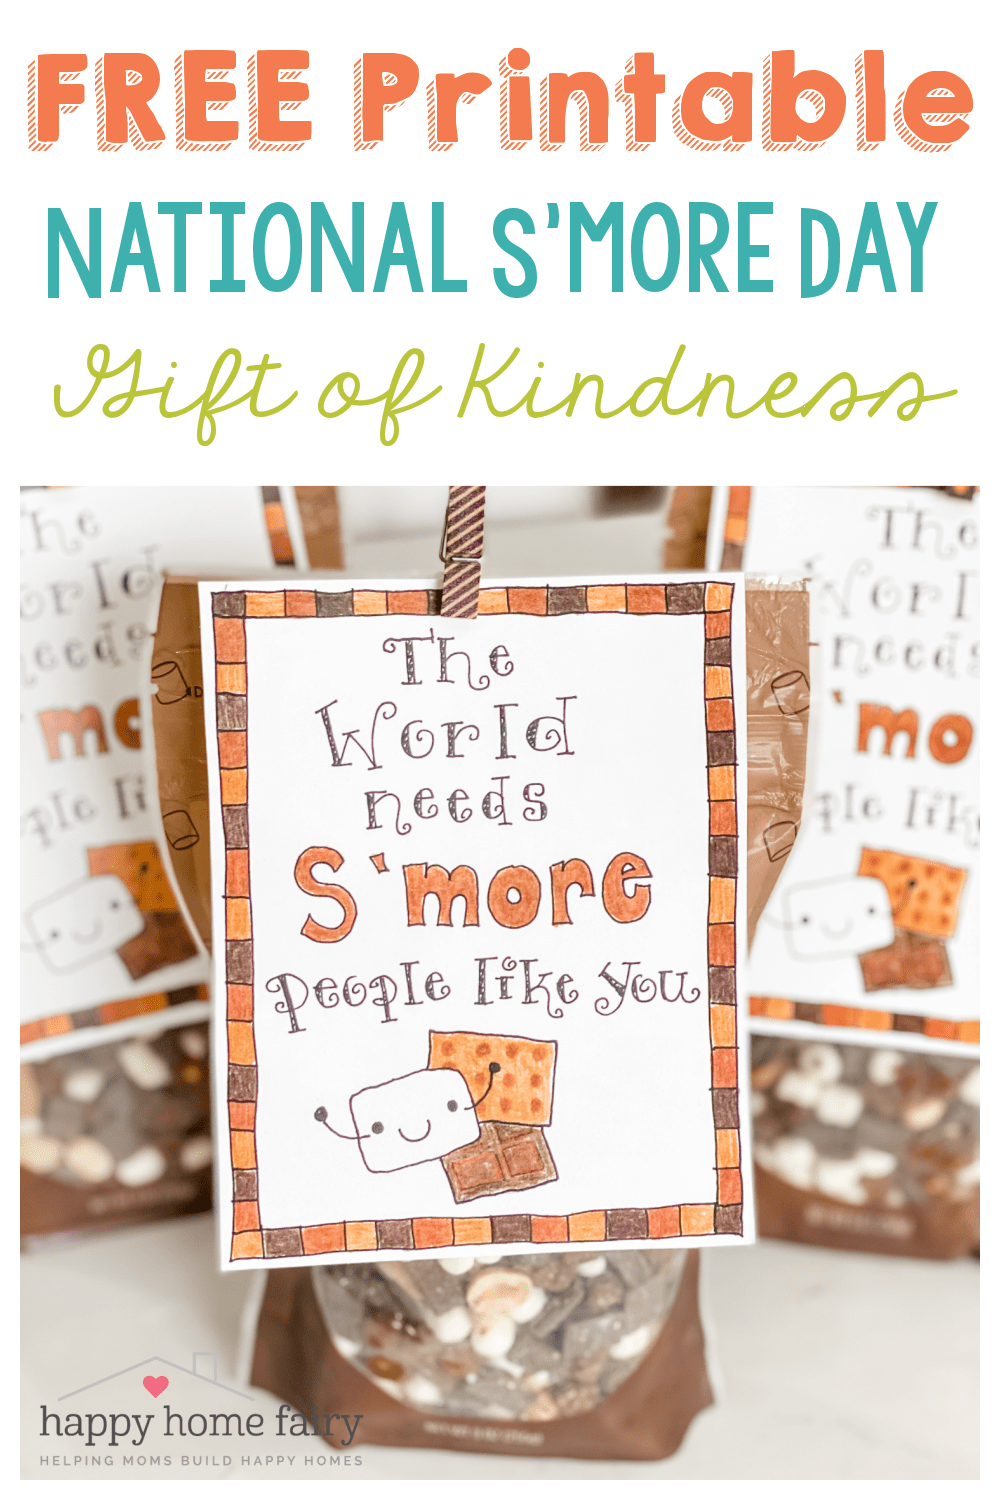 NATIONAL S'MORE DAY FREE PRINTABLE TAG OF KINDNESS AT HAPPY HOME FAIRY